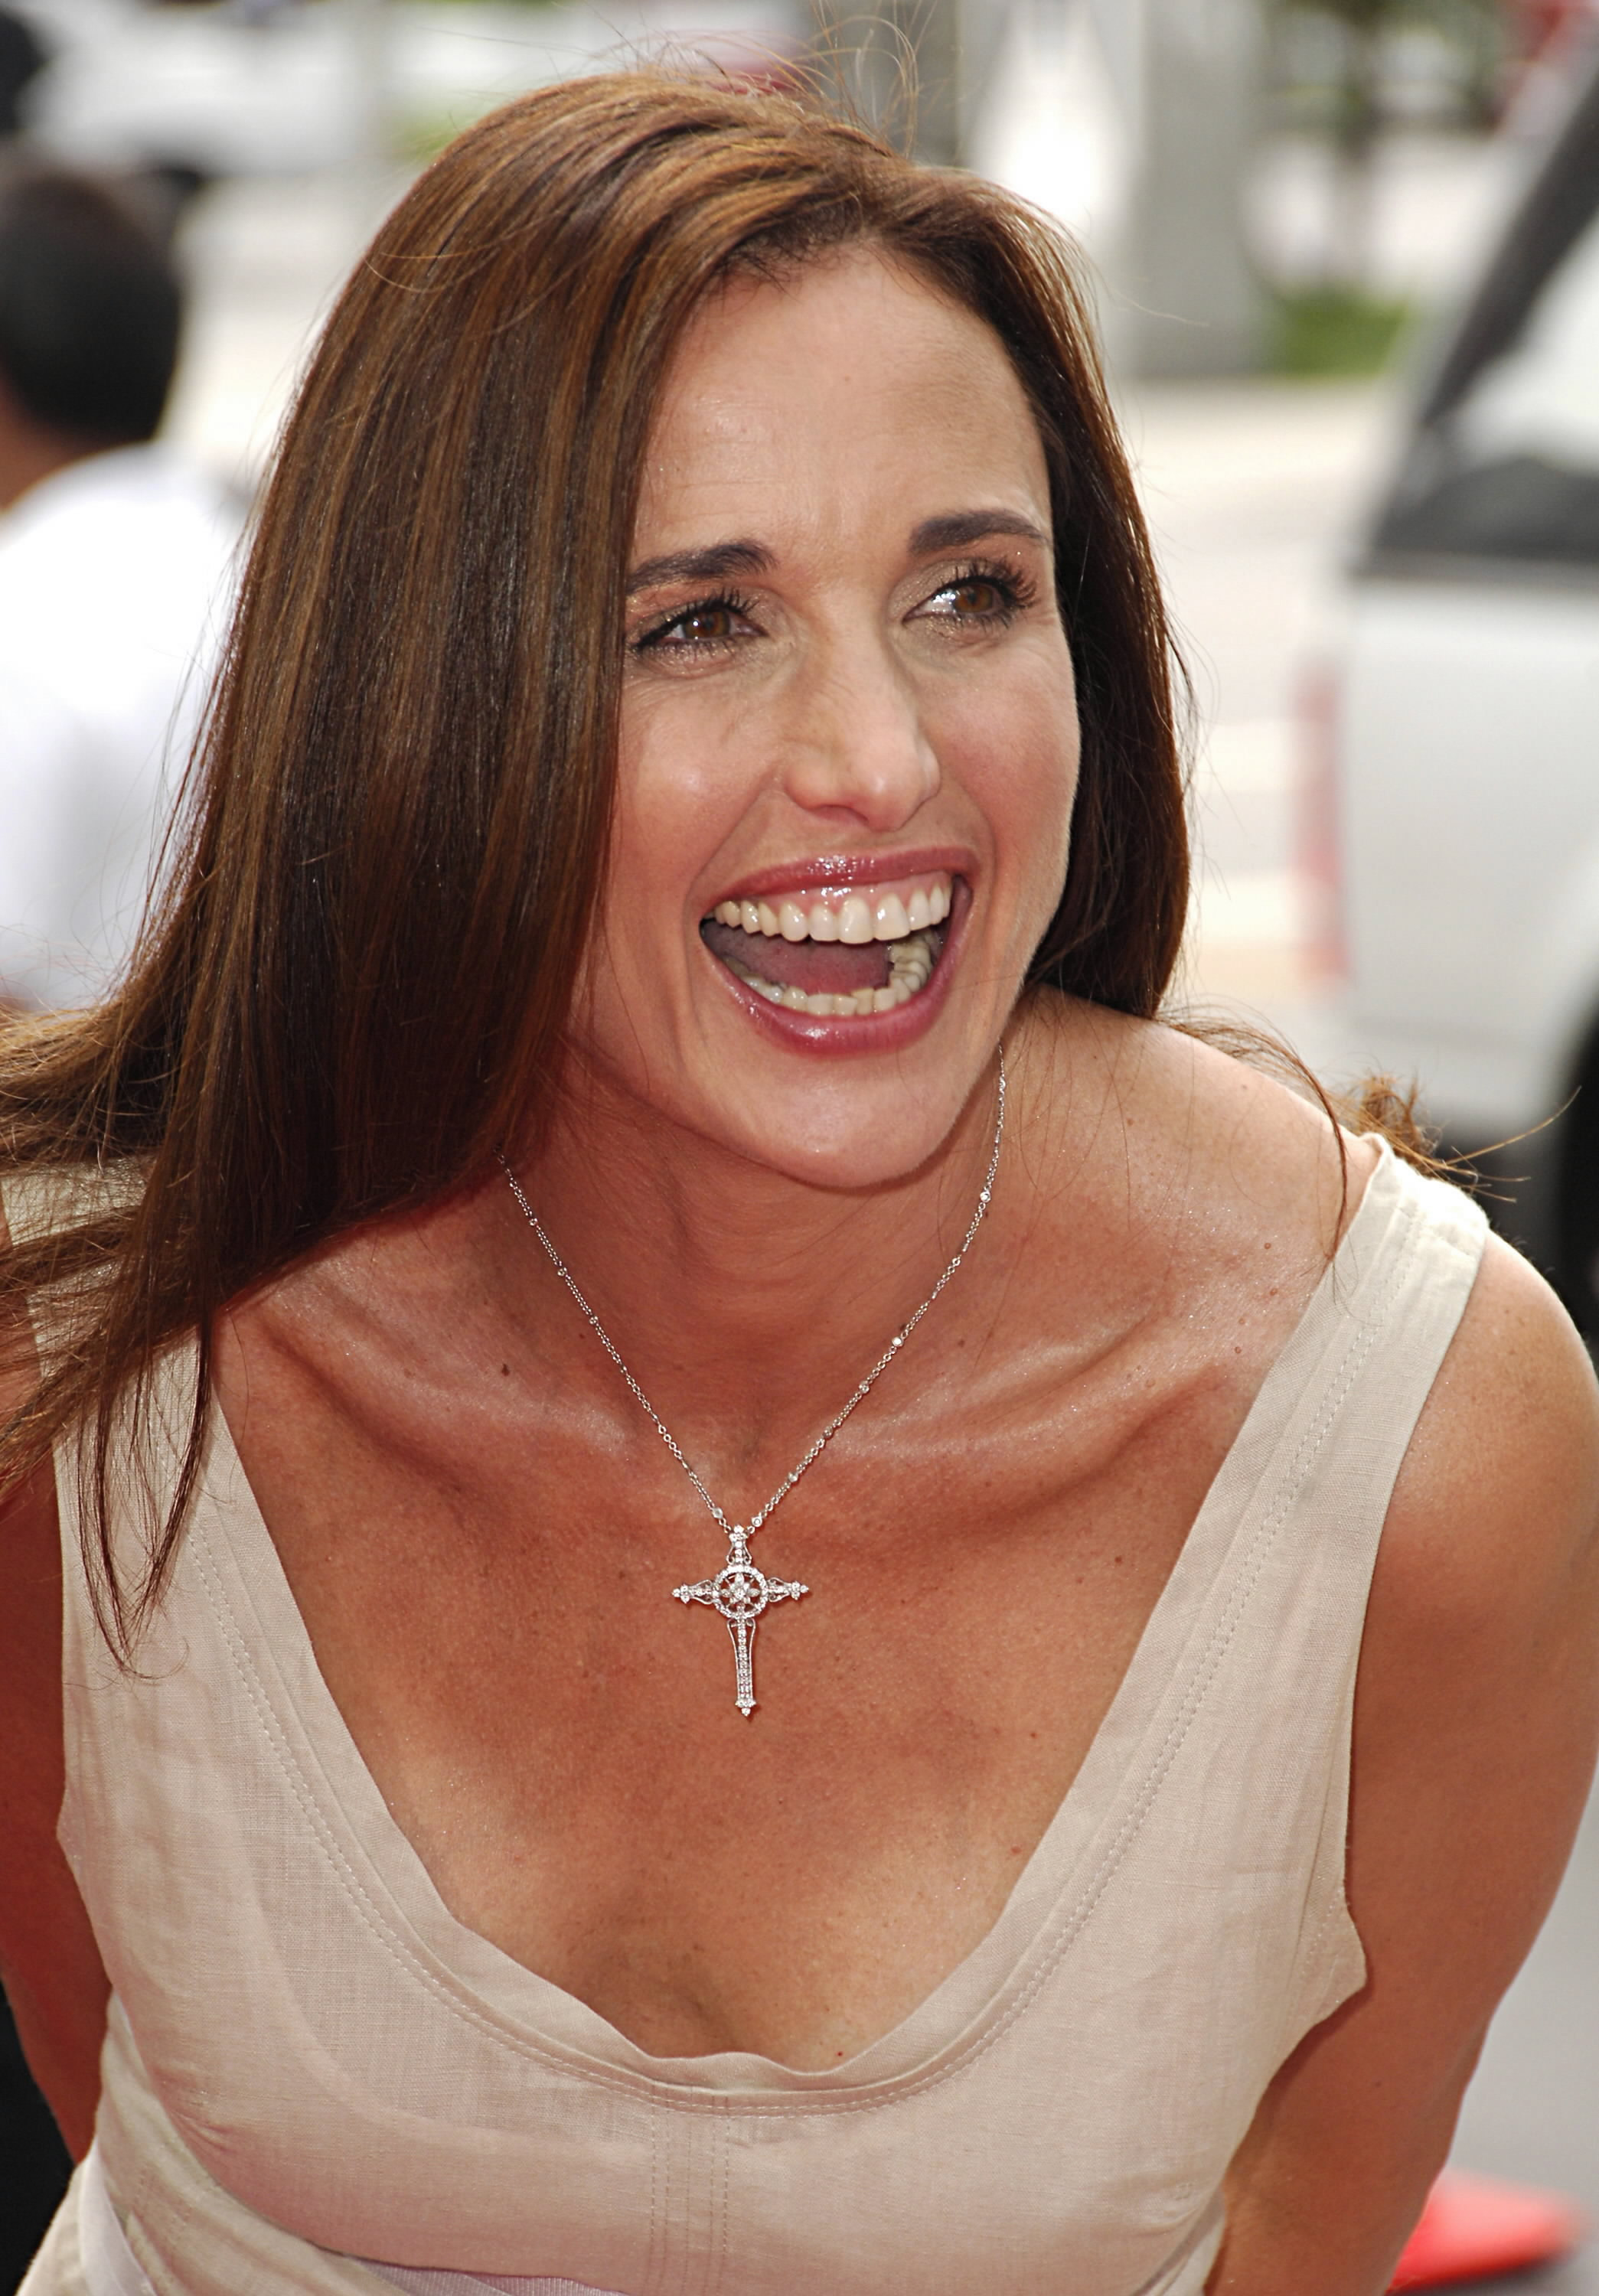 Andie Macdonald andie macdowell photo gallery - page #13 | celebs-place